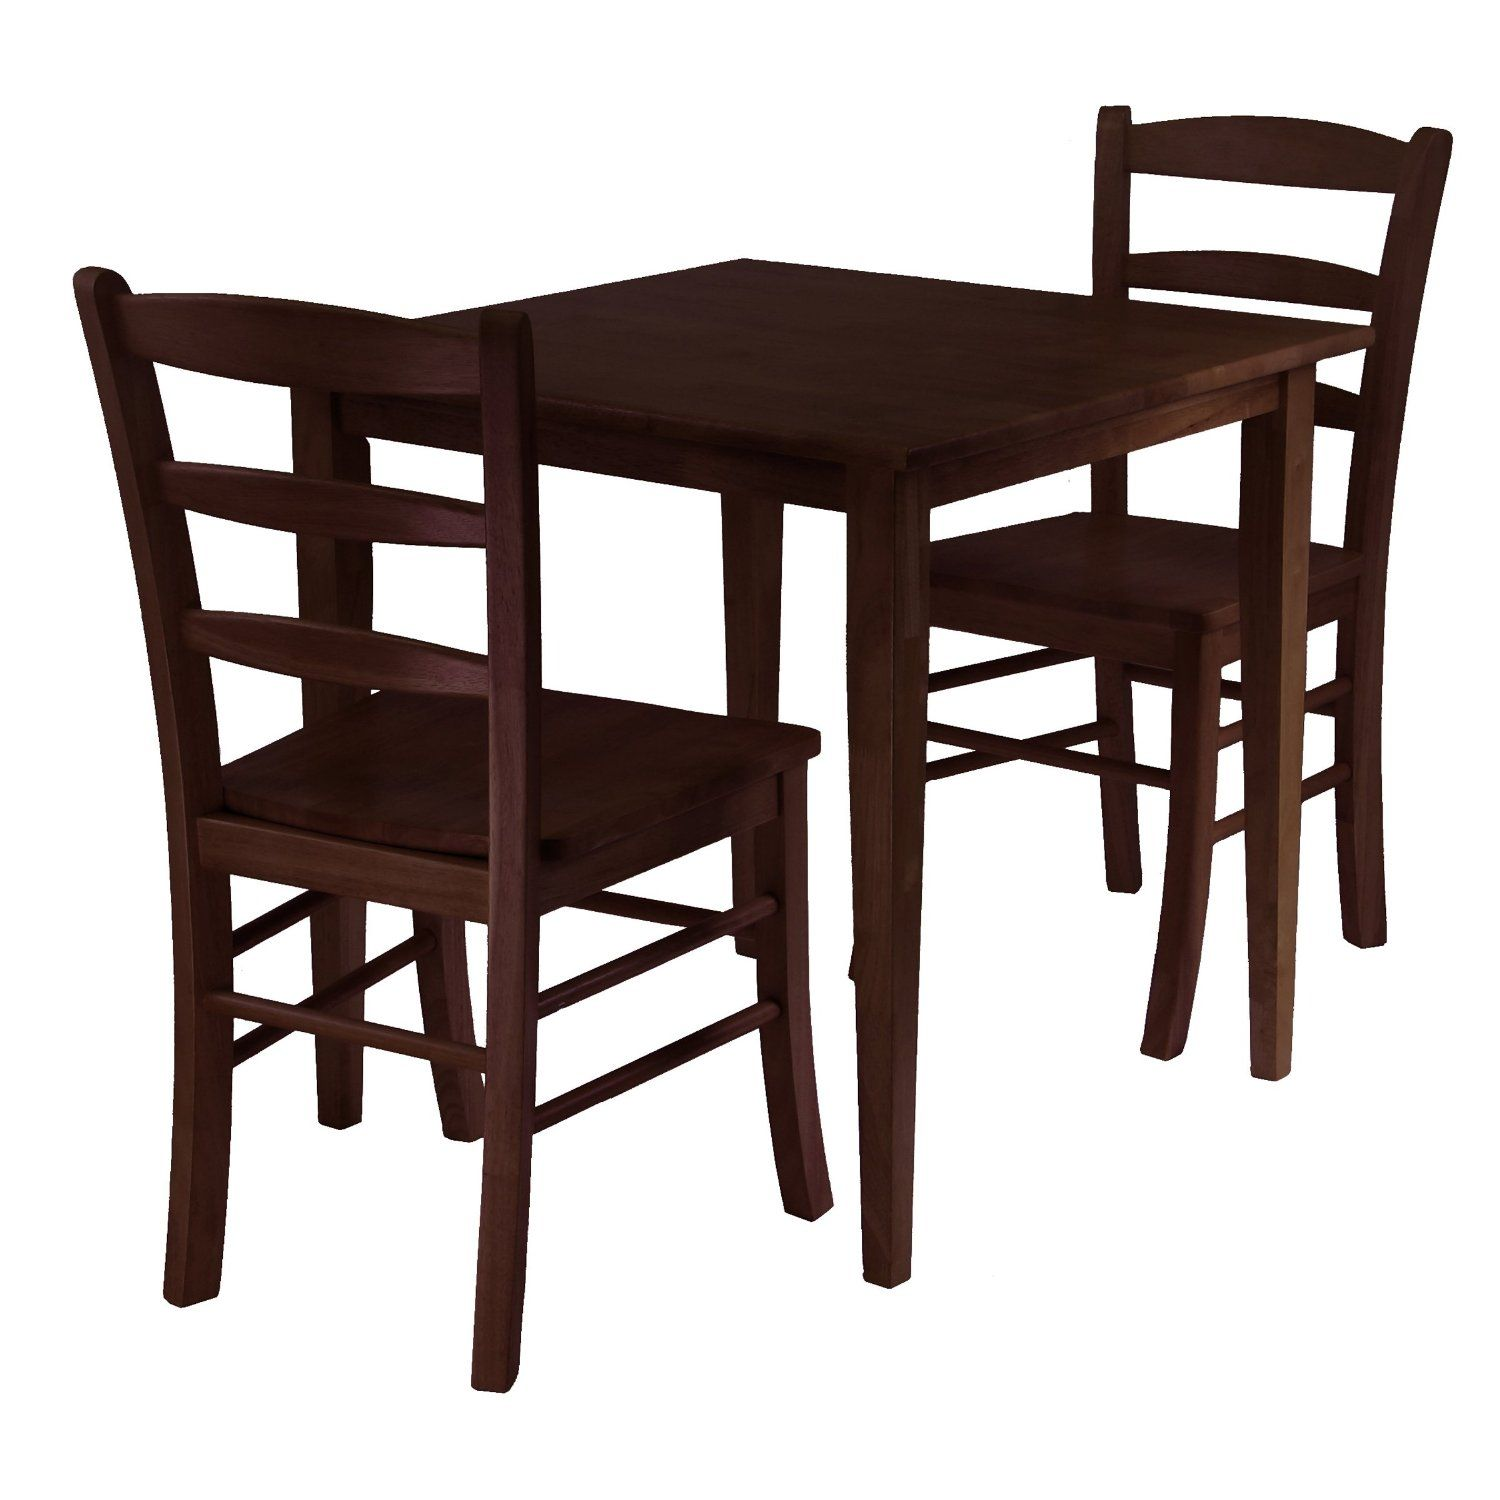 10 Small Dinette Set Design | Square dining tables, Small dining ...